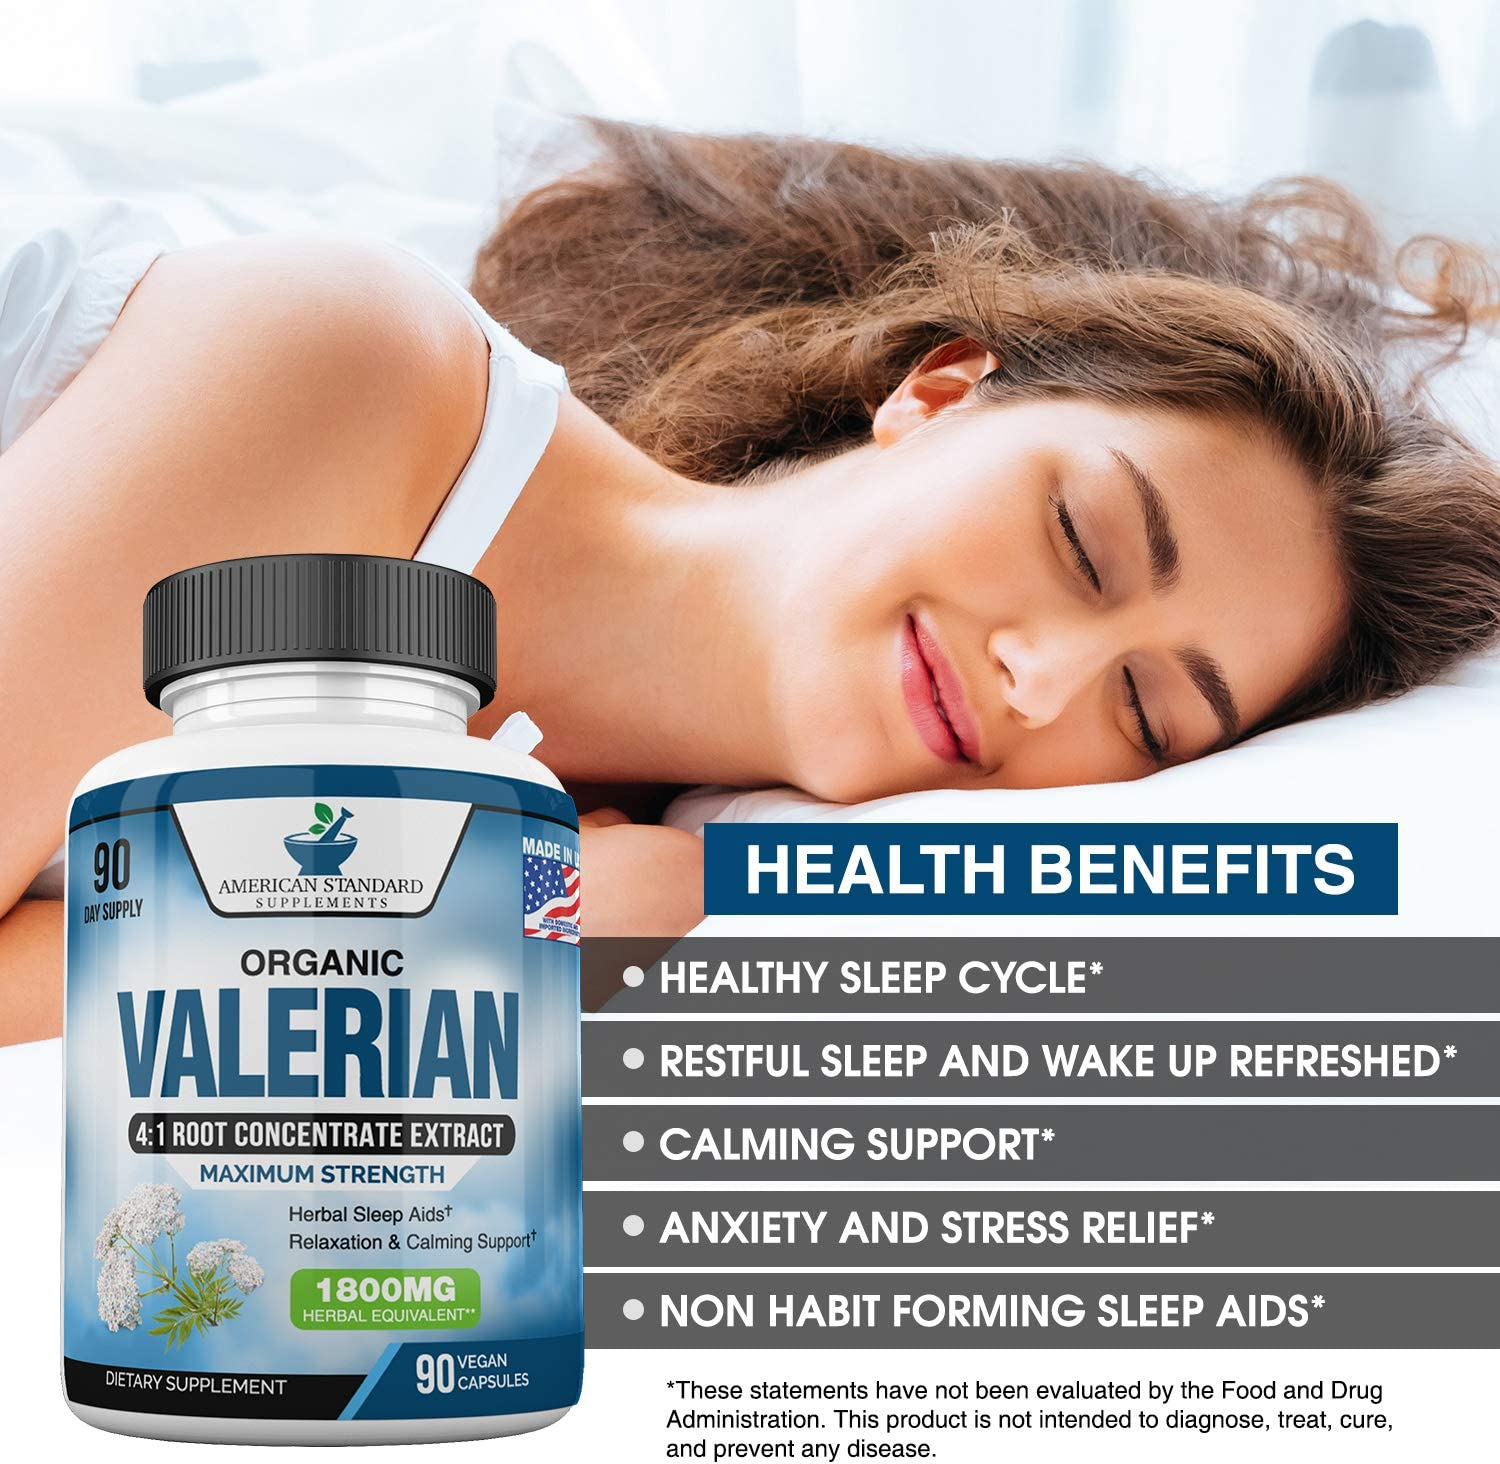 Valerian Root Capsules Organic 1800mg, Natural Sleep Aid, Sleeping Pills for Adults, Better Than Melatonin Gummies, 90 Veggie Caps, 3 Month Supply